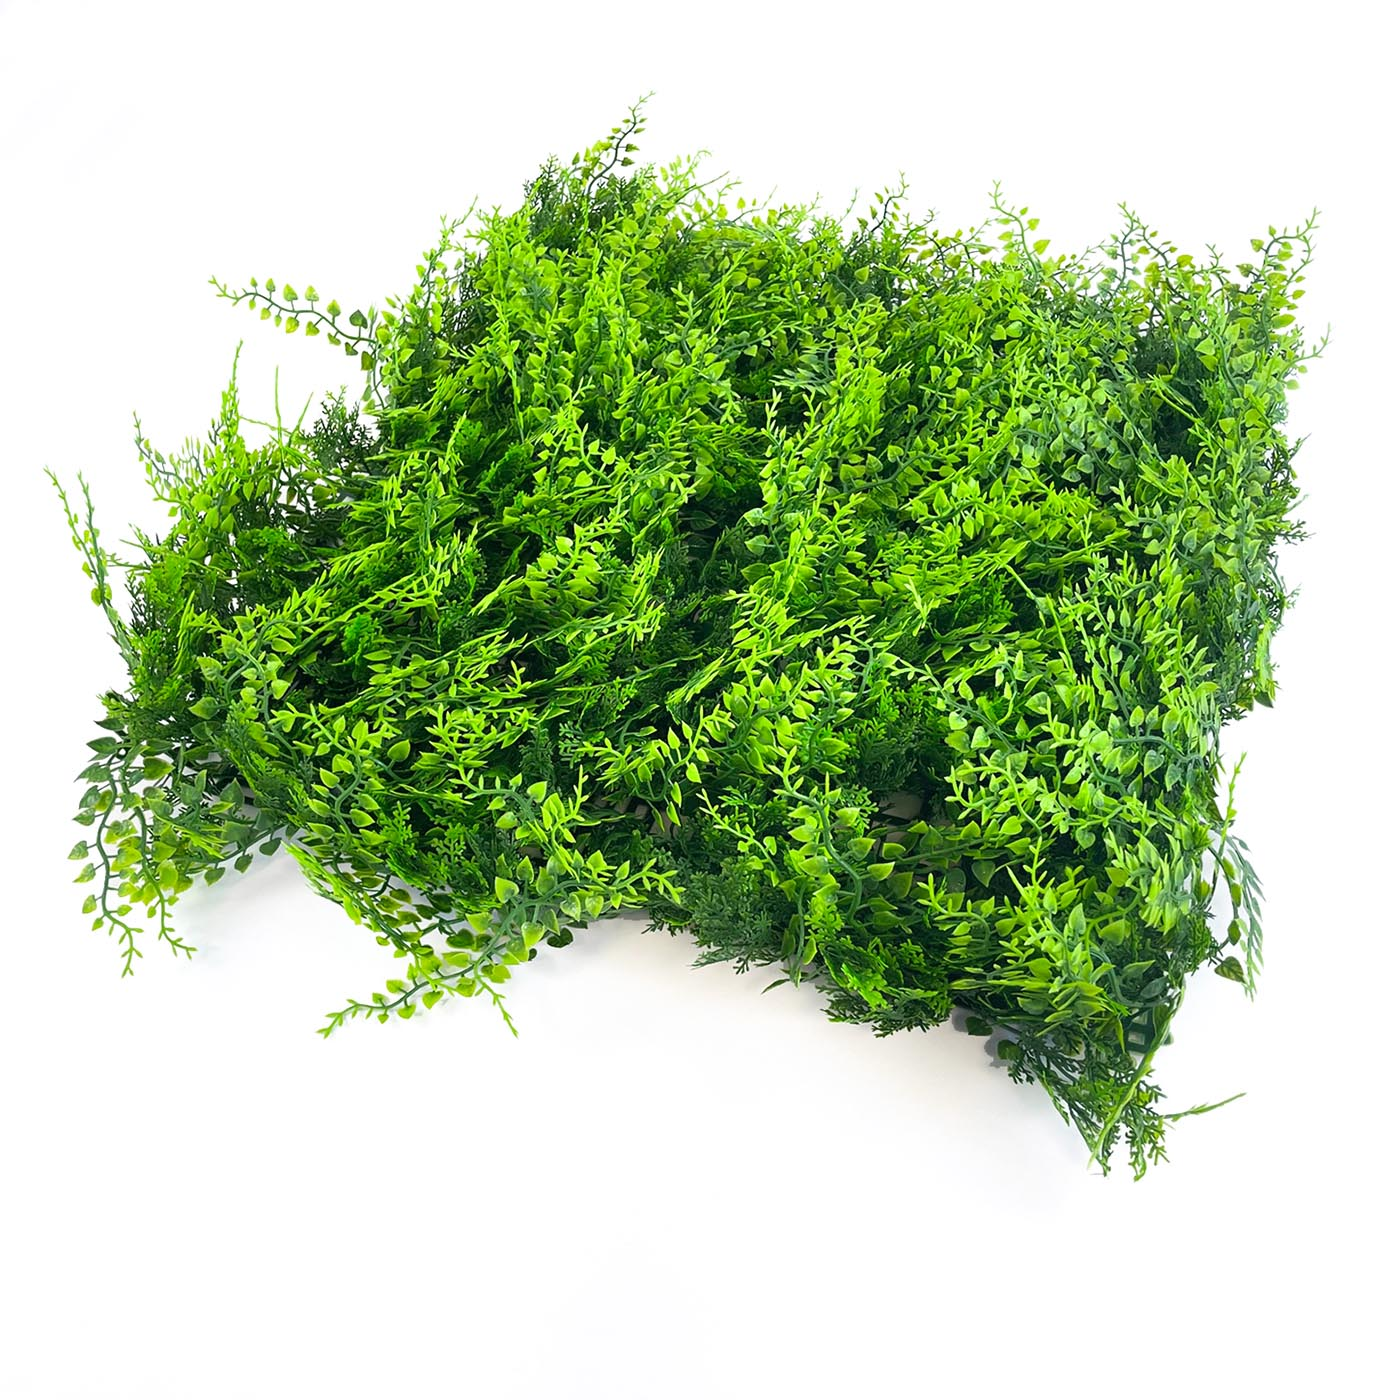 Confirming artificial hedging tile with thick, long green foliage